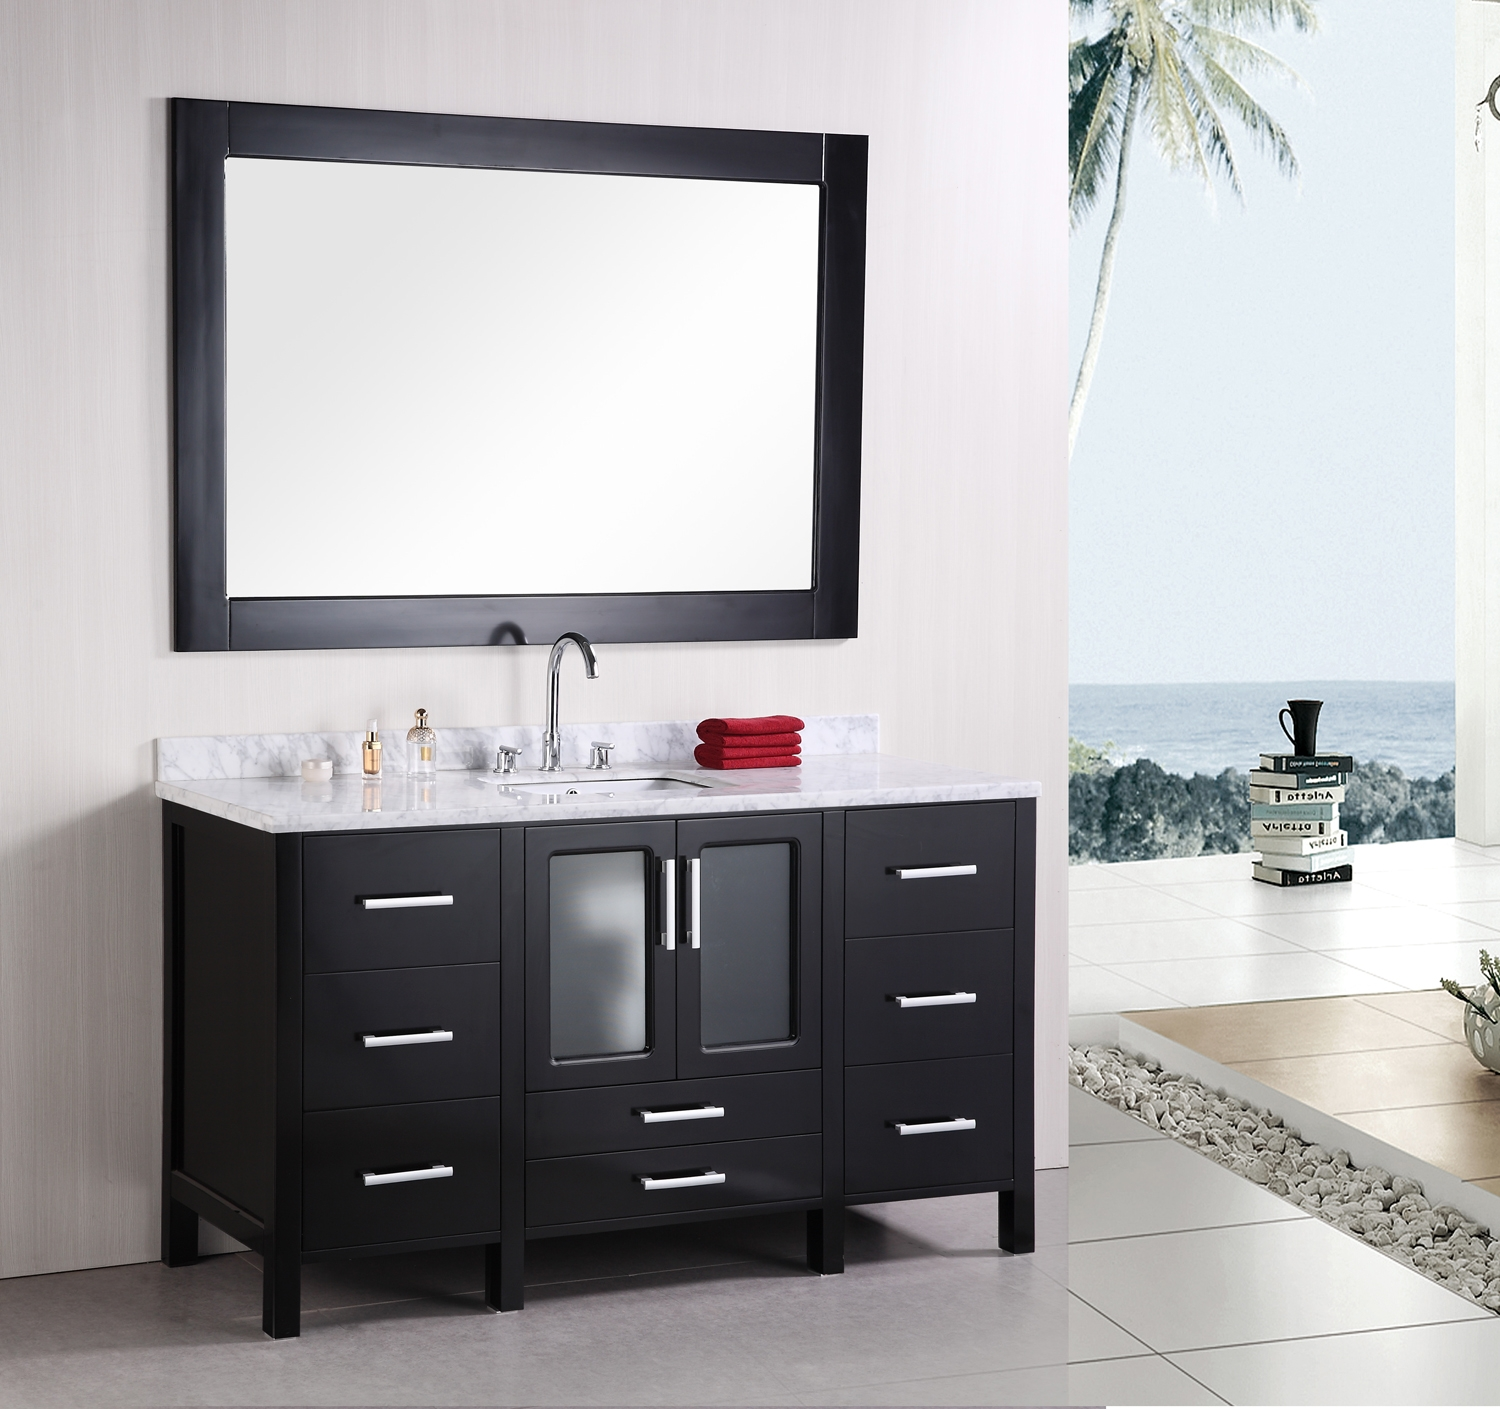 Small Shallow Bathroom Cabinet